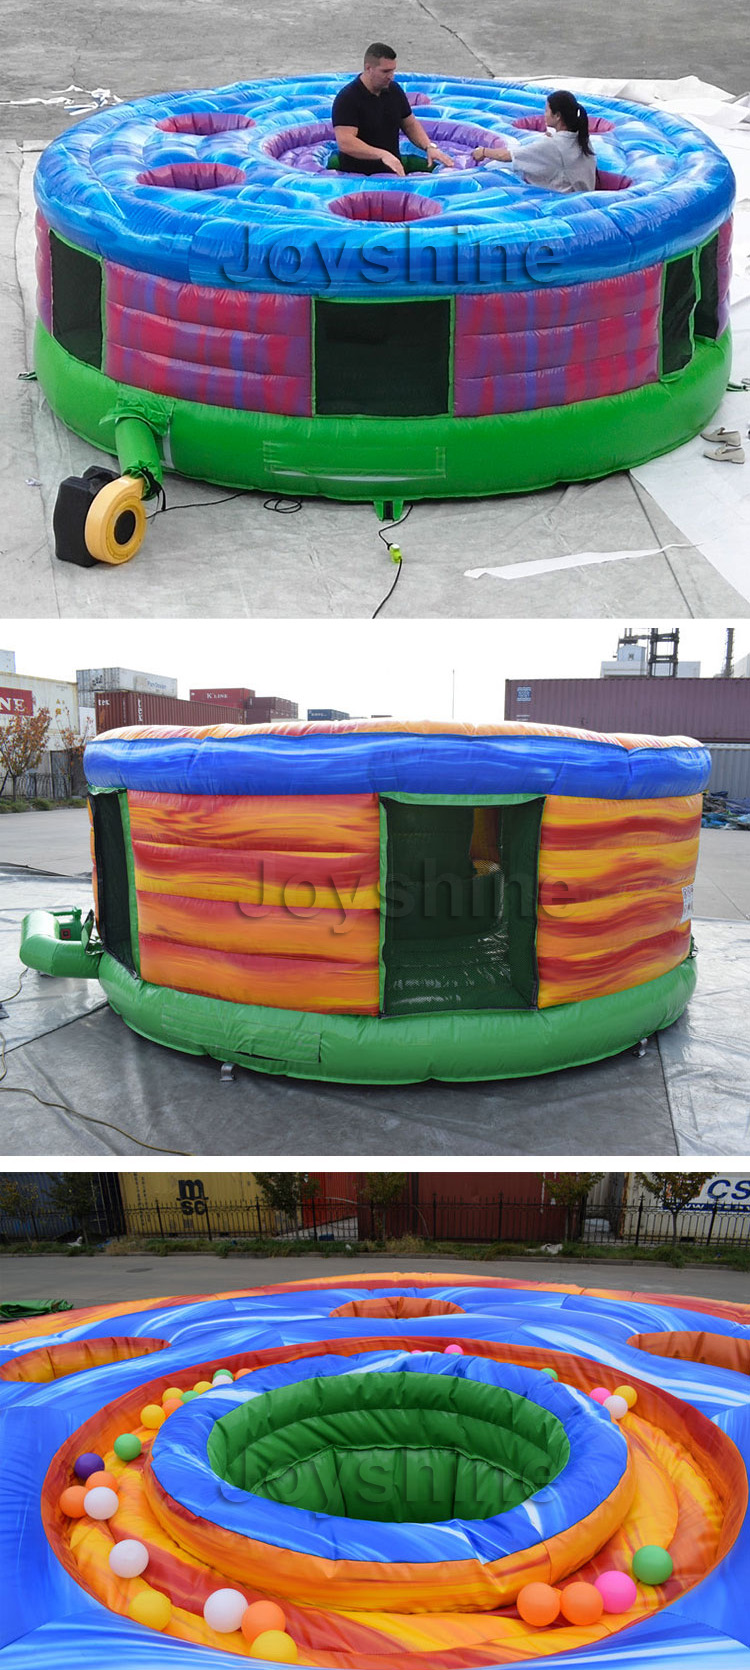 Wholesale Inflatable Human Whack a Mole Game Machine Giant Inflatable Whack-A-Mole Game, Inflatable Whack